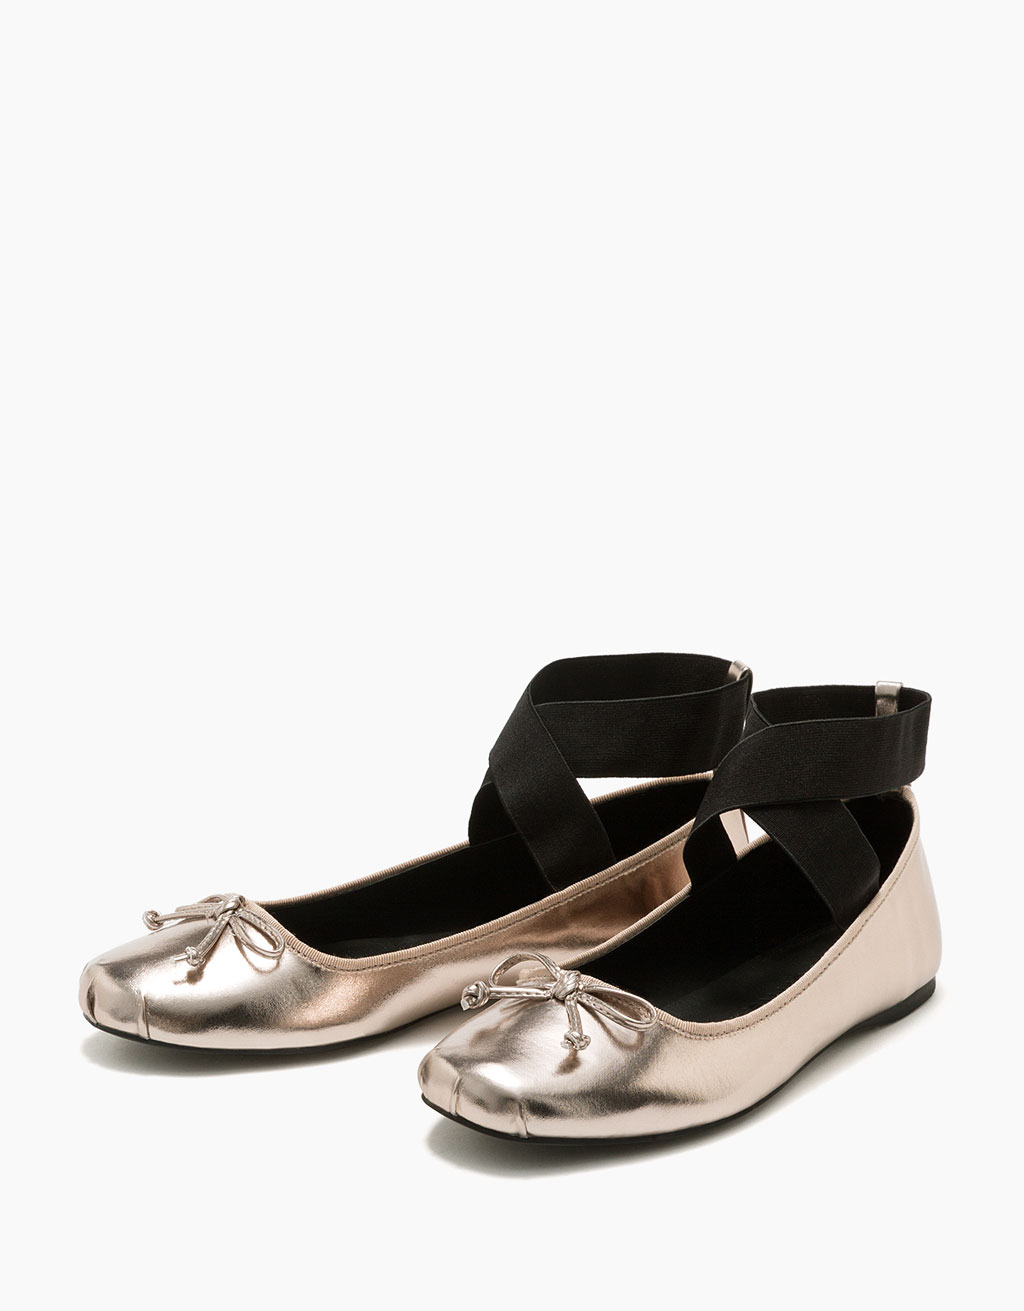 Elastic ballerina shoes with shiny metallic detail